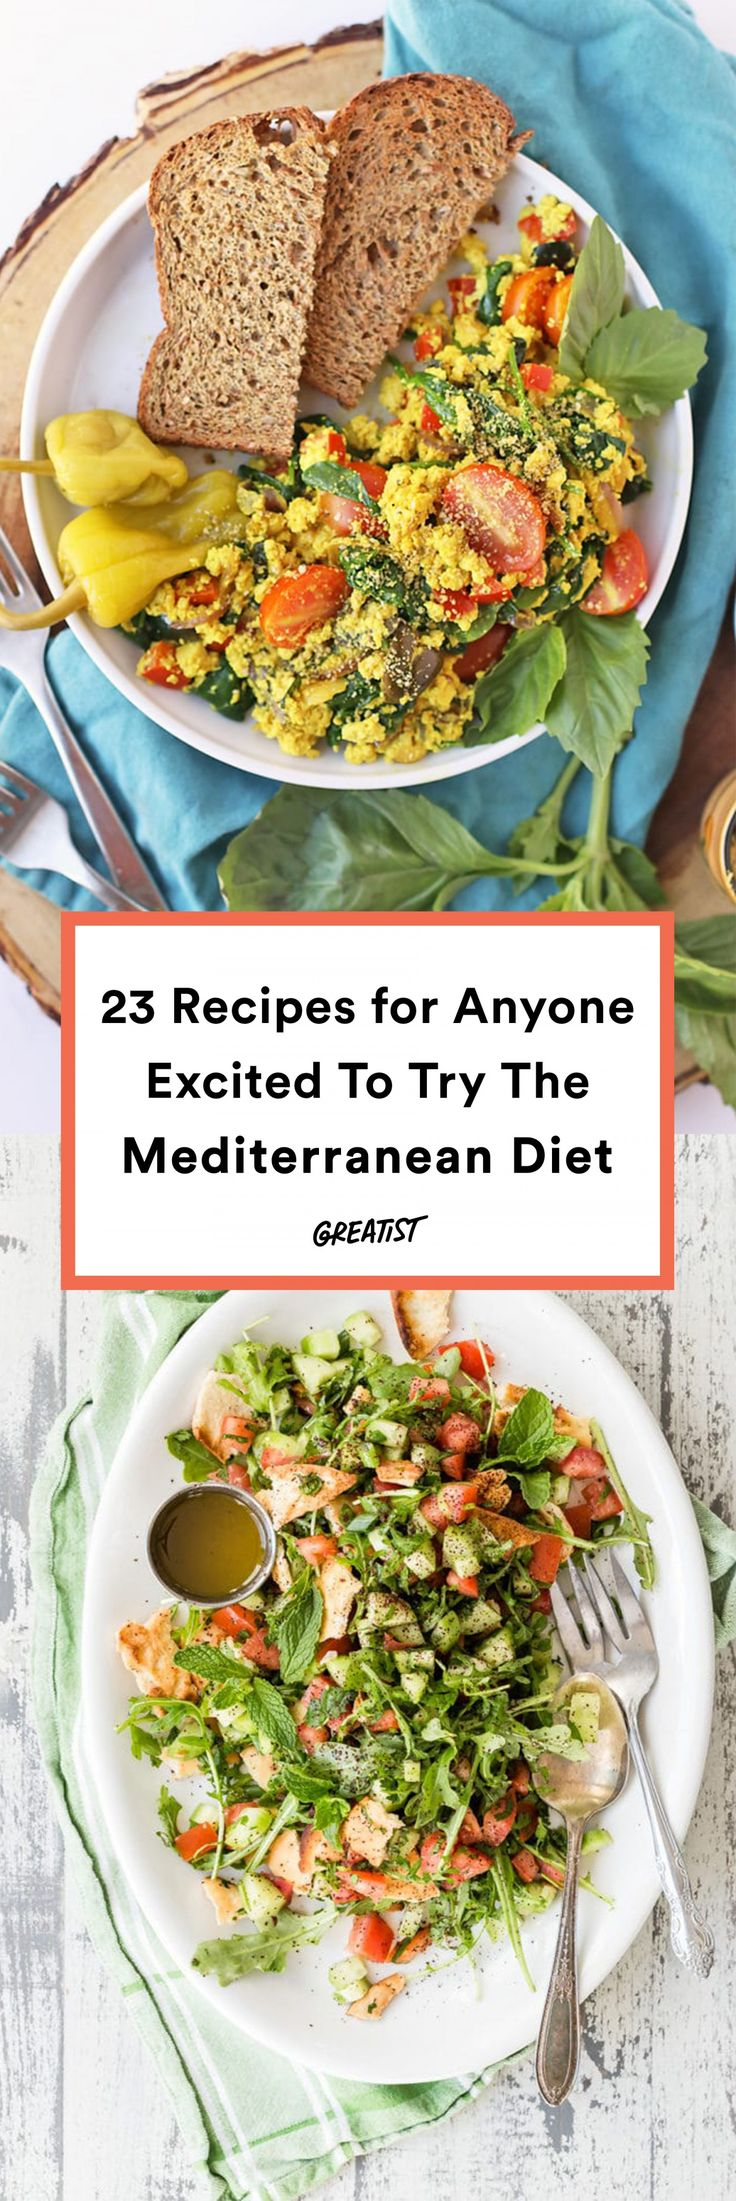 Start With These 23 Recipes If You're Going on the Mediterranean Diet